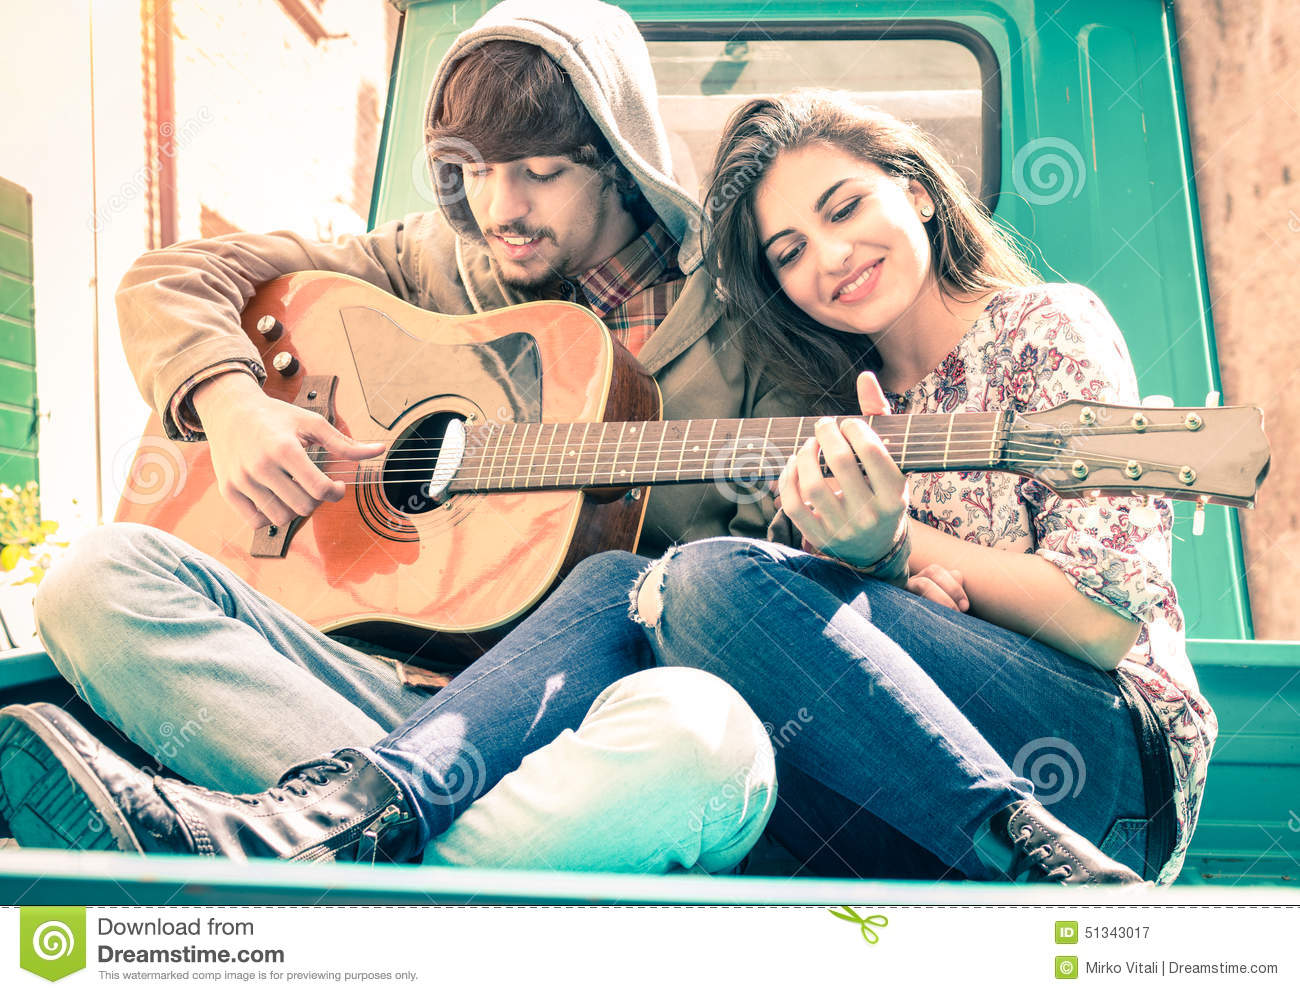 Love couple Guitar Wallpaper : Romantic couple Of Lovers Playing Guitar On Vintage Minicar Stock Image - Image: 51343017